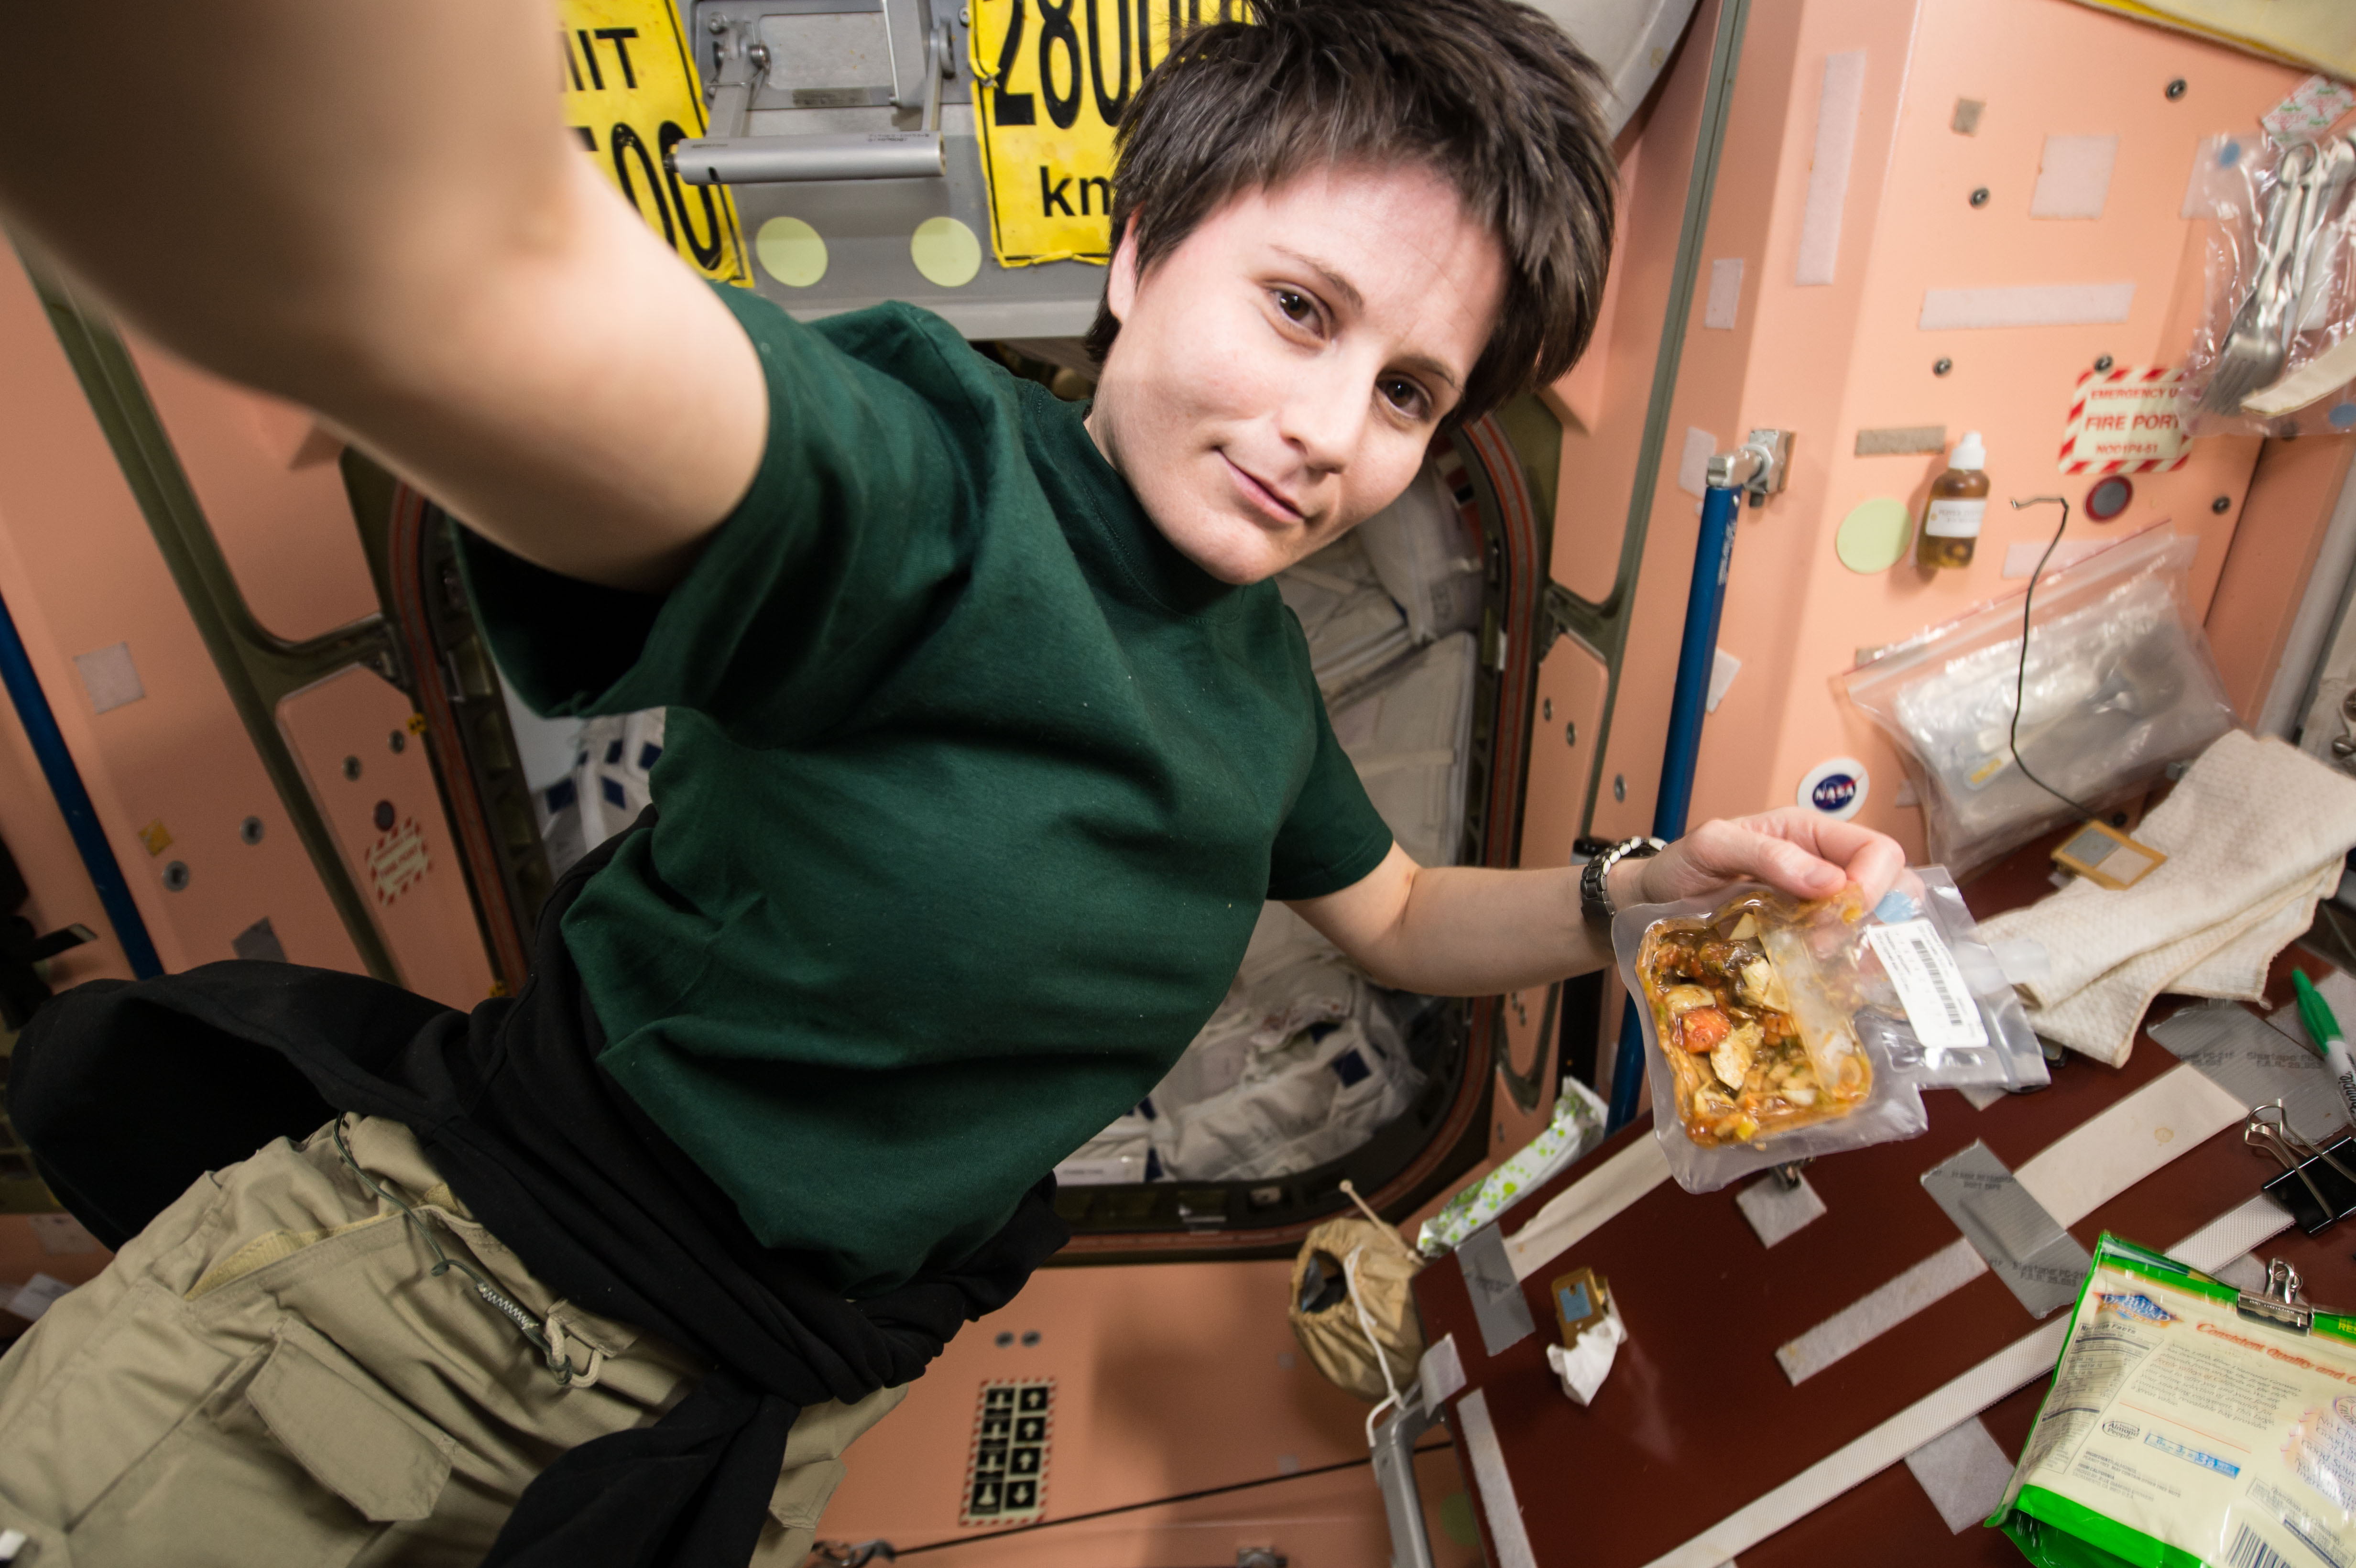 Fileiss 42 Samantha Cristoforetti Prepares To Eat A Snack In The